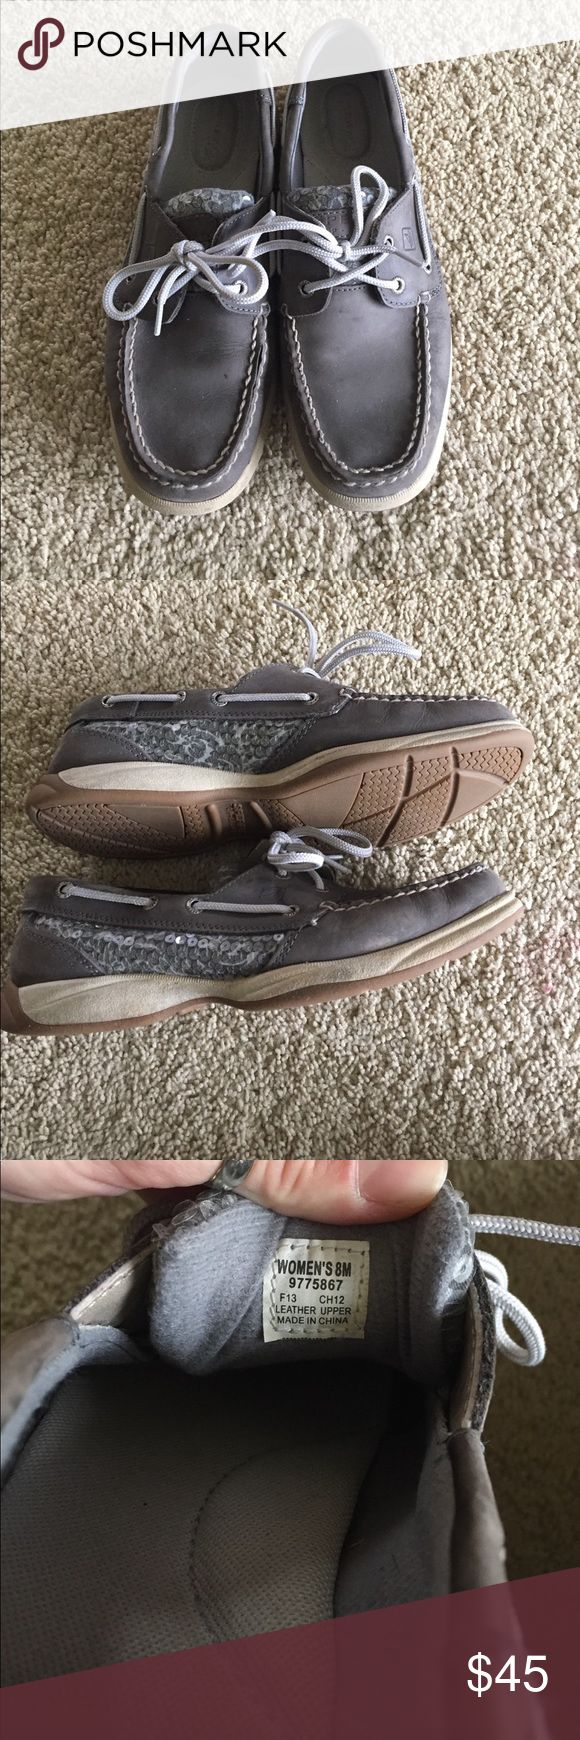 Sperry top sider shoes Size 8 and in good condition. Needs a good cleaning and couple tiny dots on top!!! Sperry Top-Sider Shoes Flats & Loafers